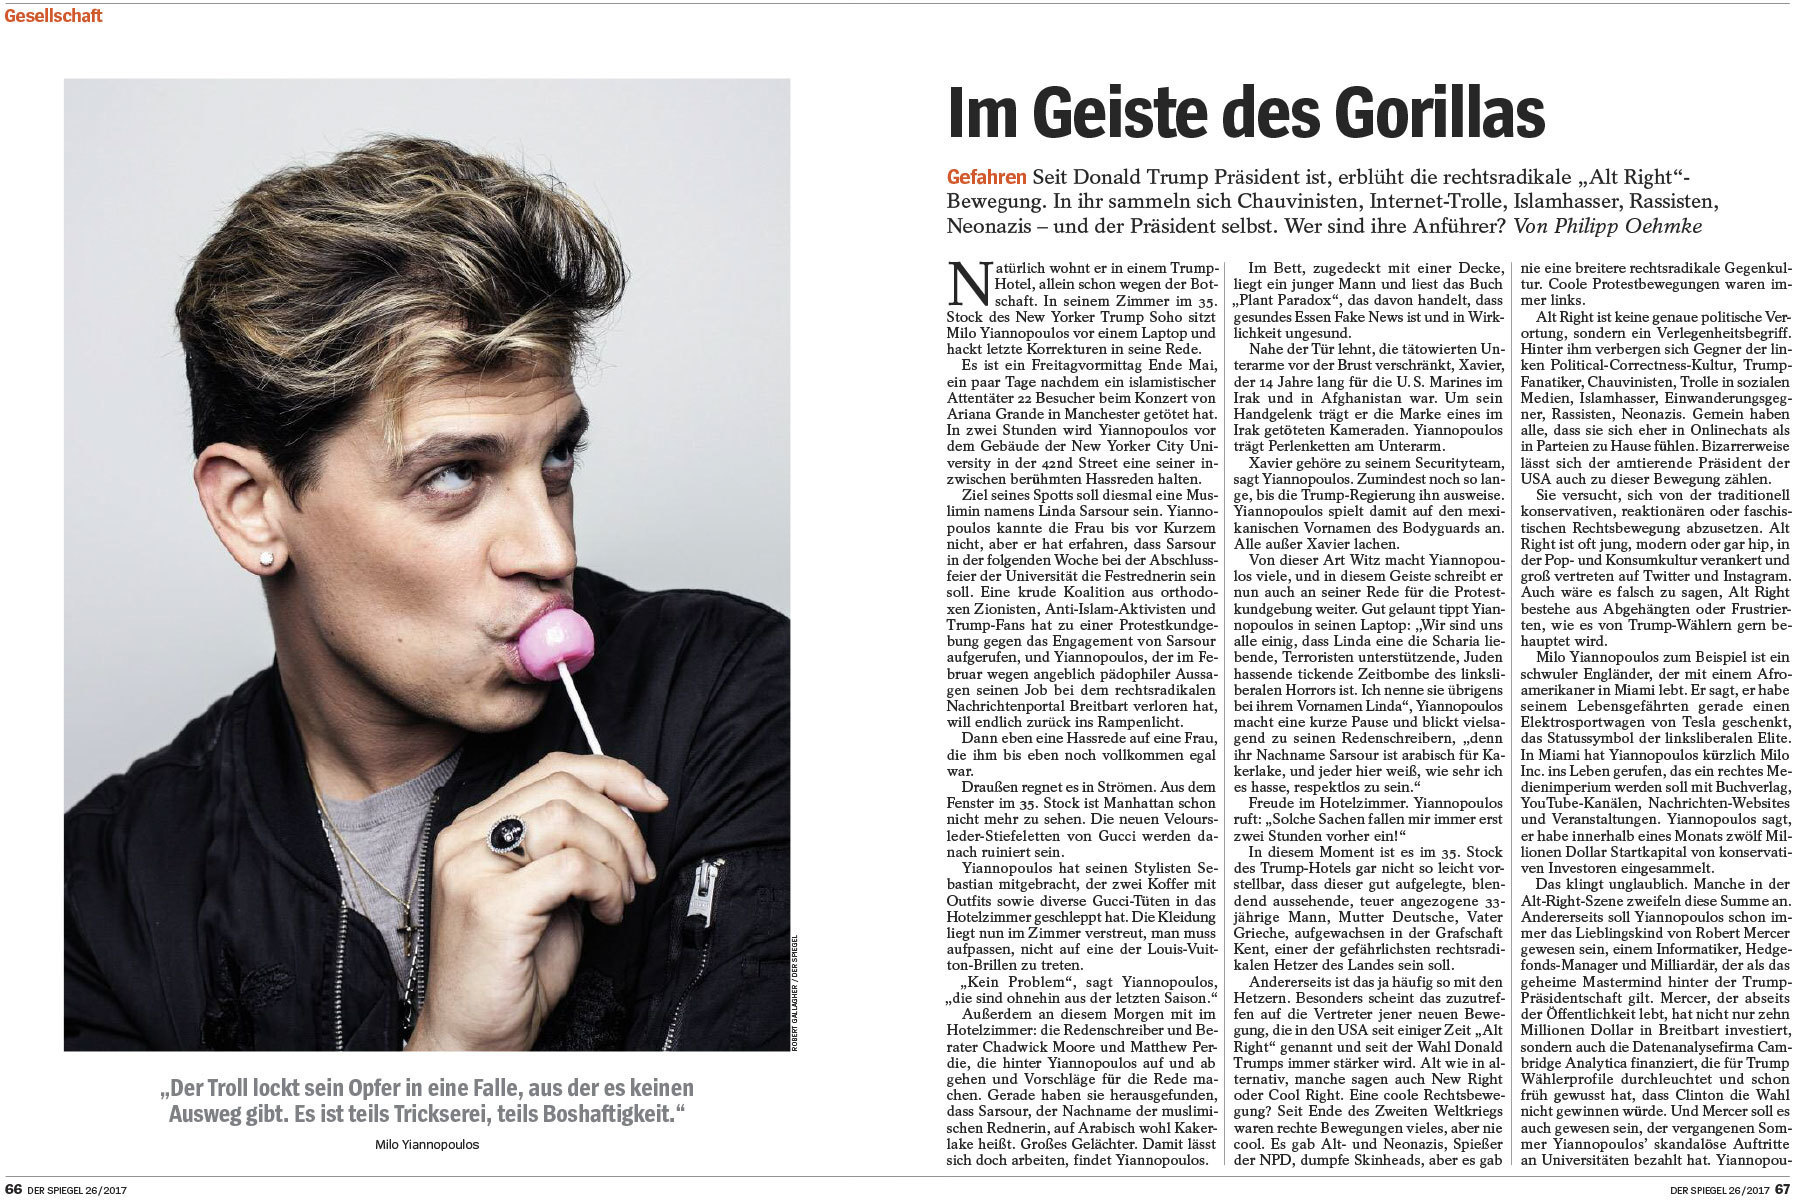 Milo Yiannopoulos and the Alt- Right for Der Spiegel